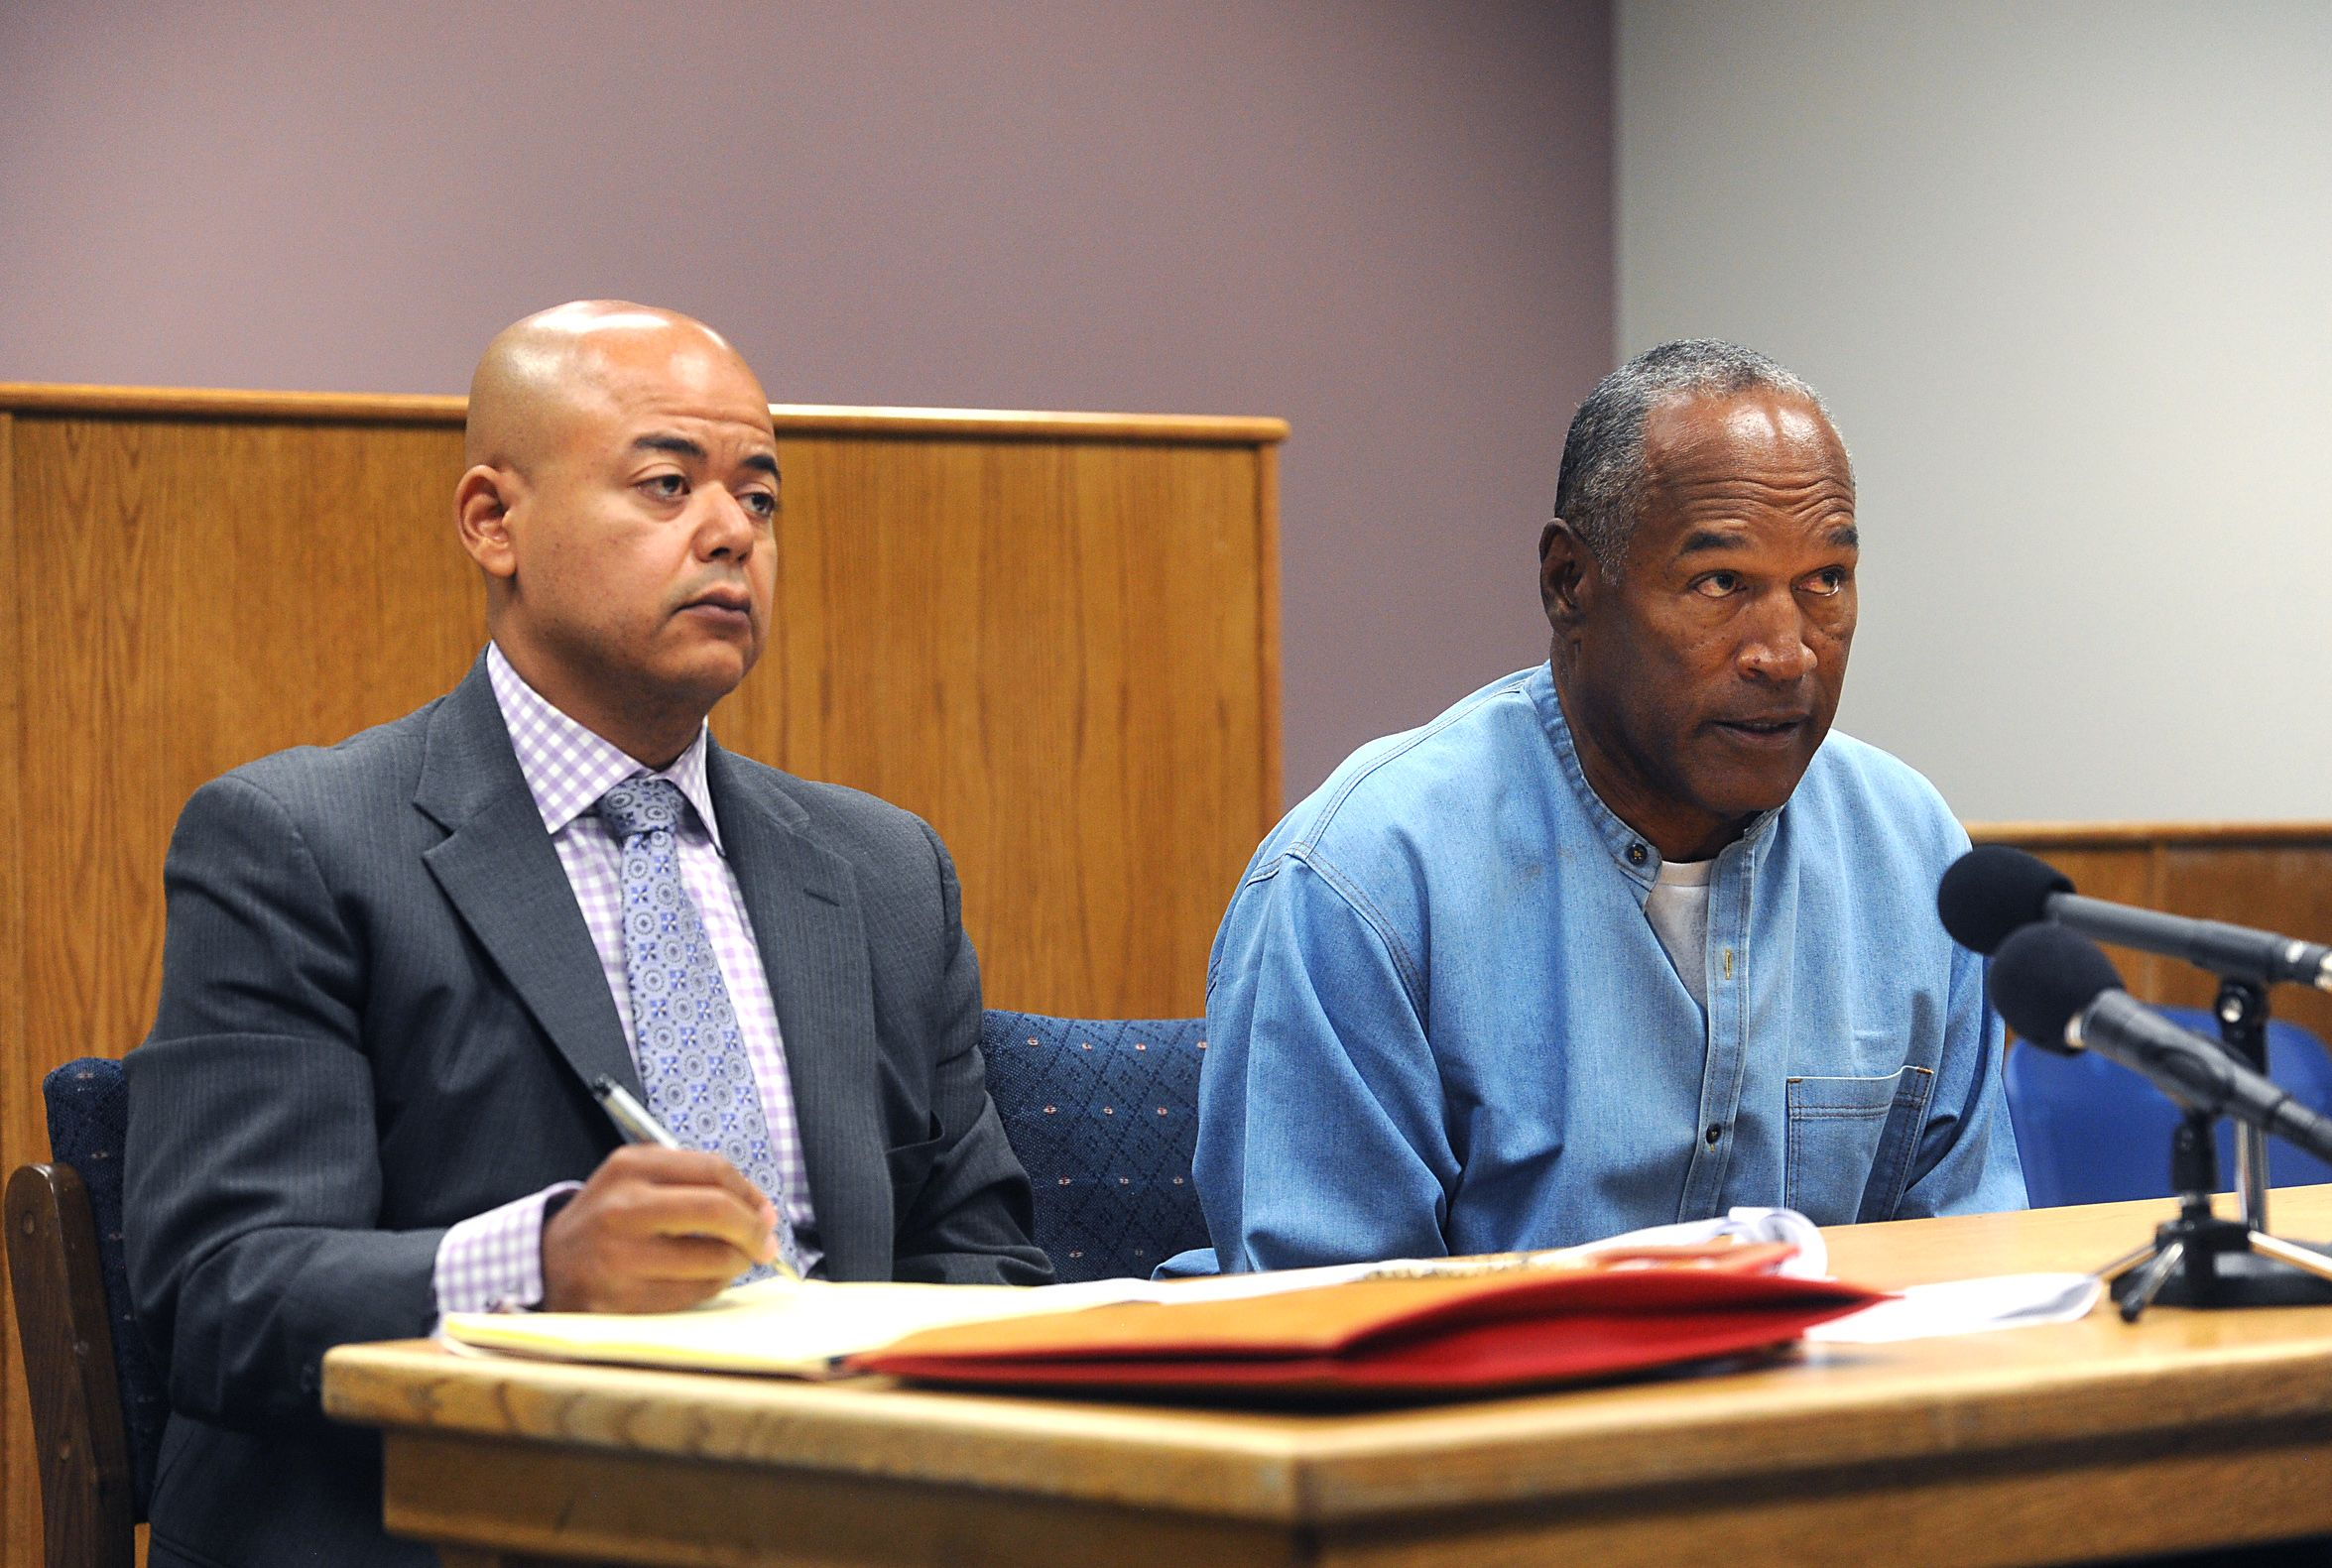 O.J. Simpson interview turned down by TV networks